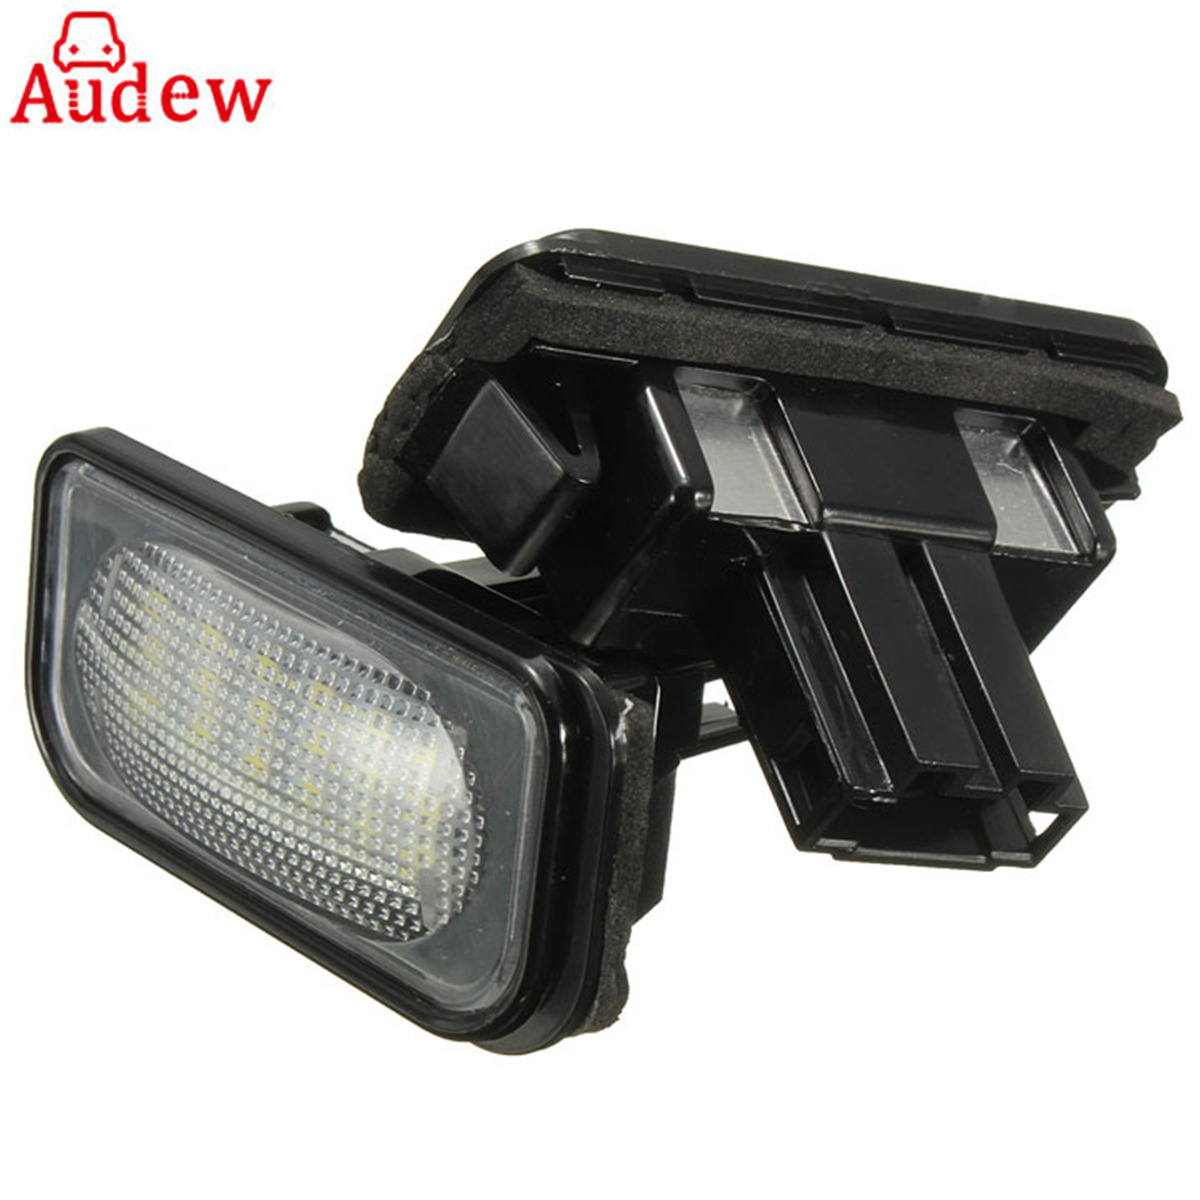 2Piece 18LED Car License Plate Light Lamp  For Mercedes/Benz W203 W211 W219 R171 2005-2010 ak ak56023 mercedes benz sl65 1 18 r c car toy silver